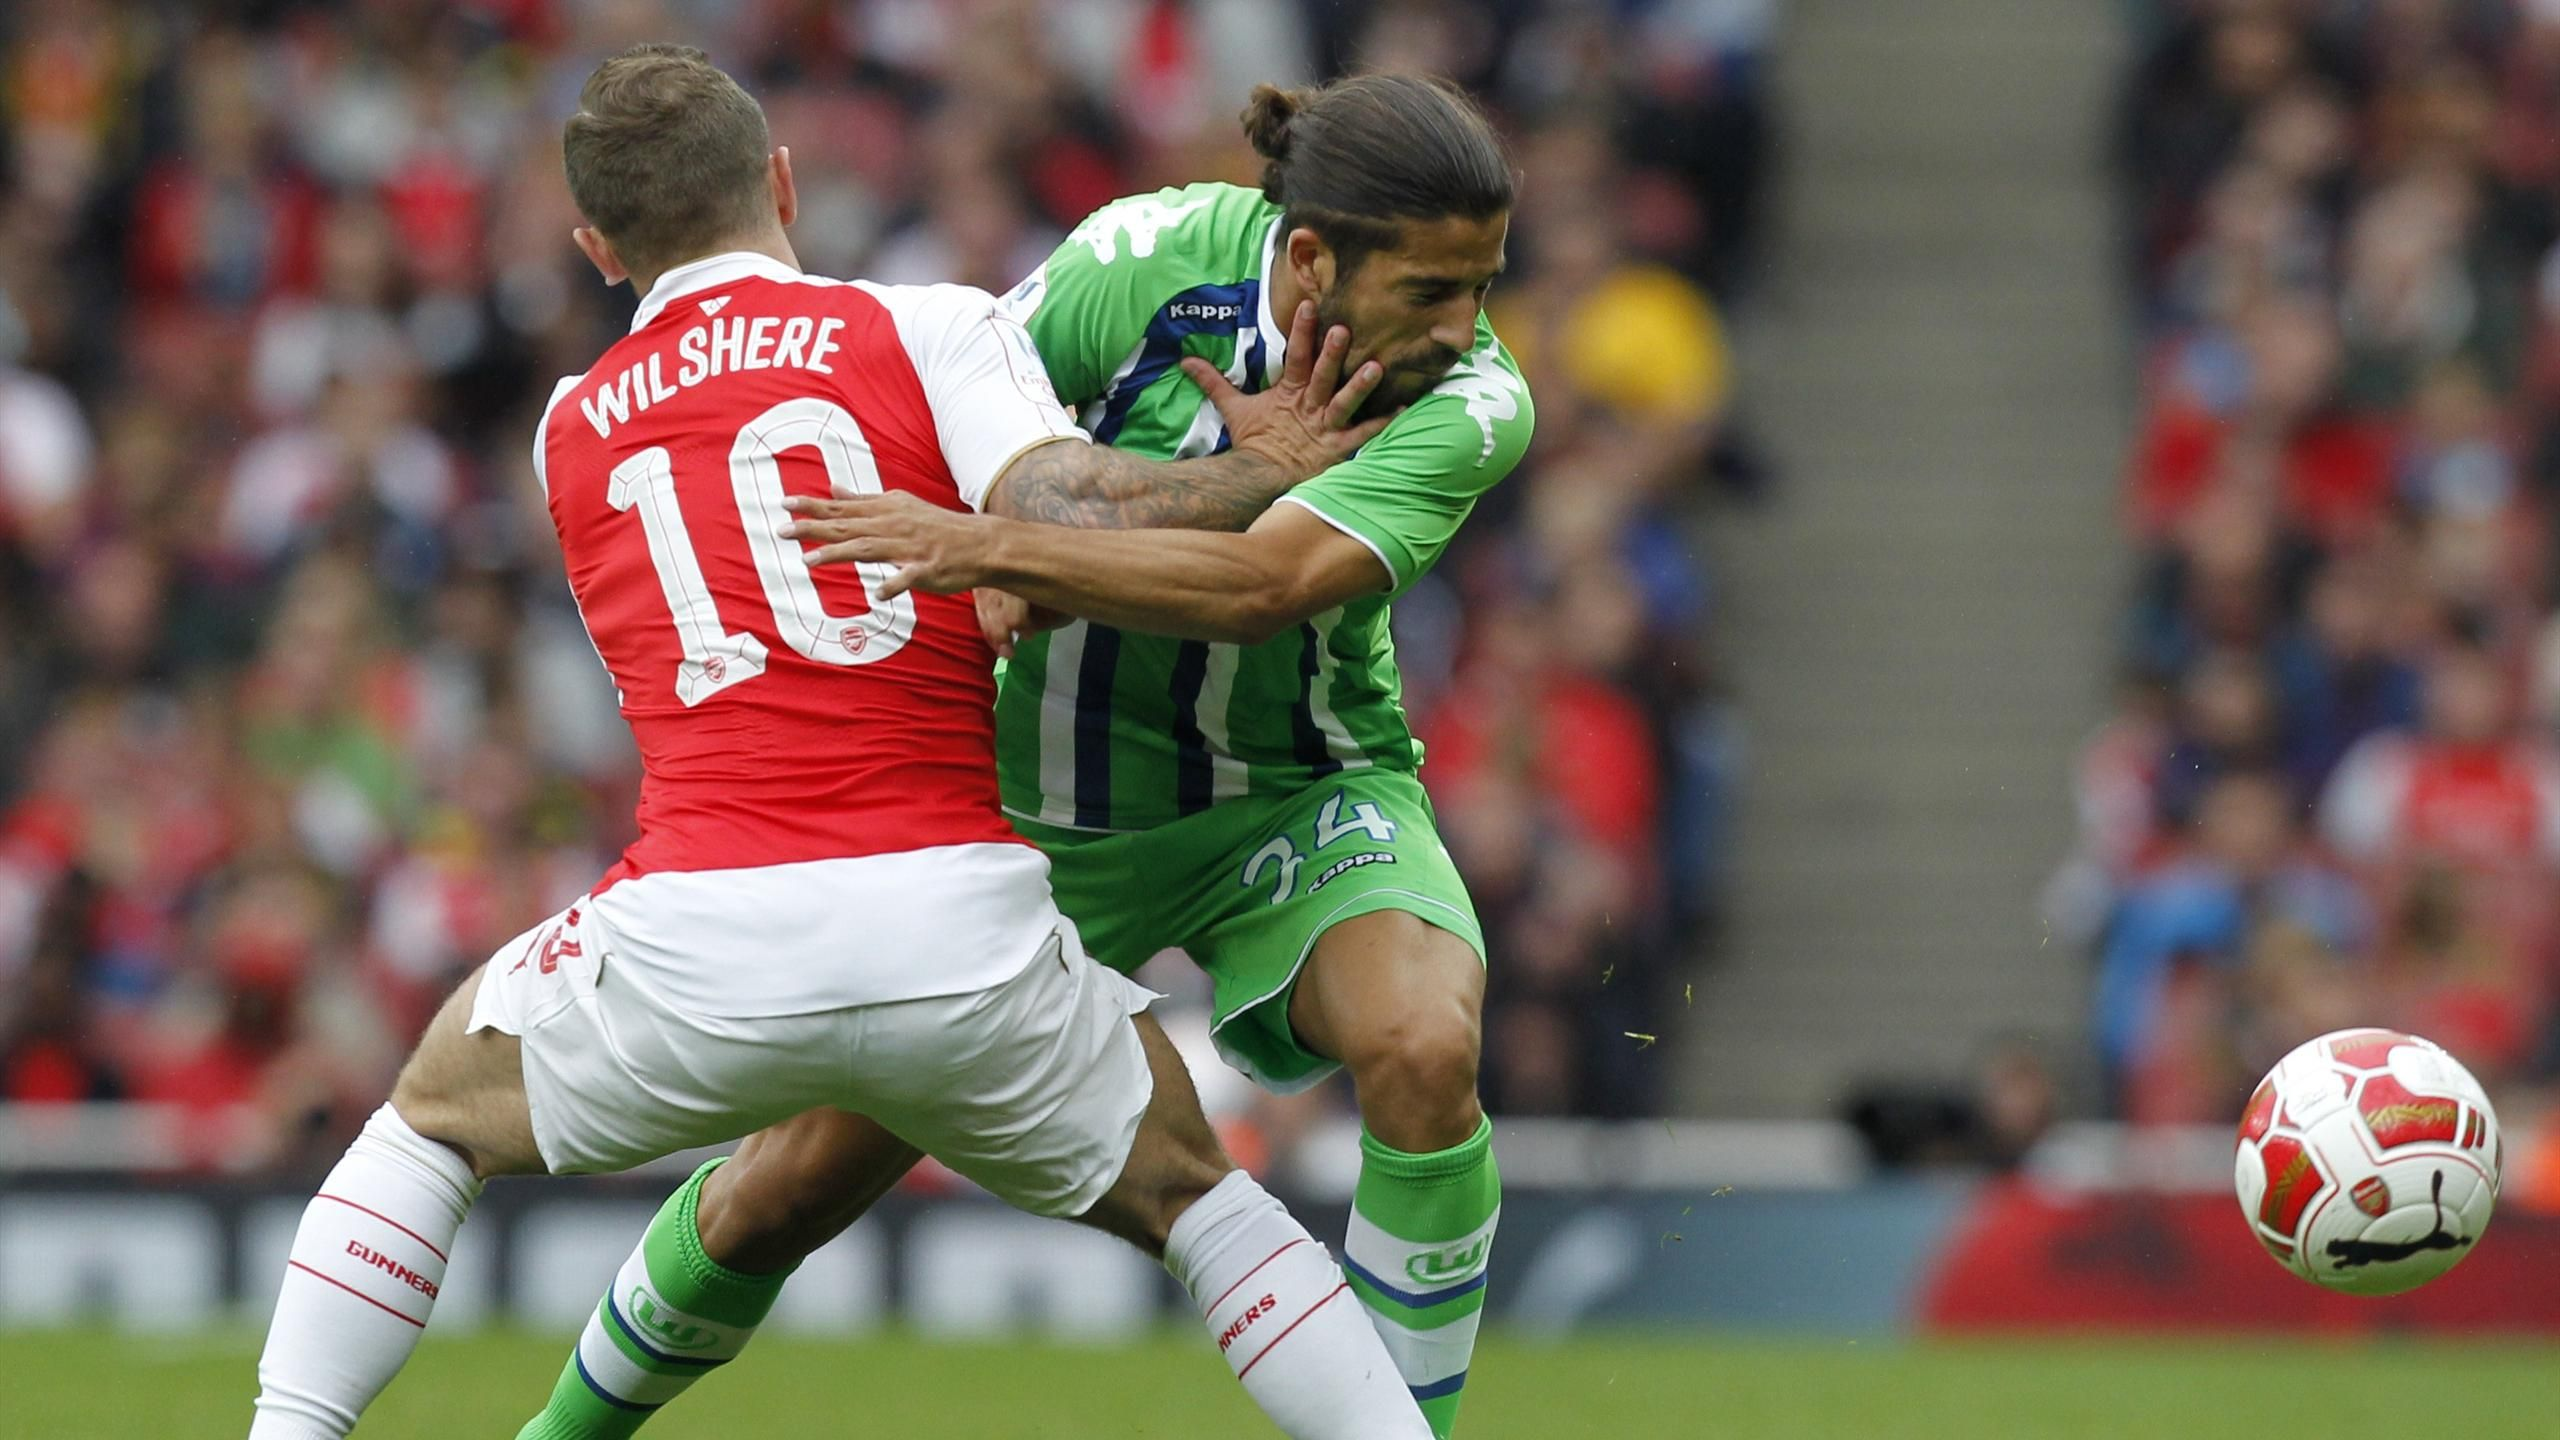 Video: Arsenal vs Wolfsburg